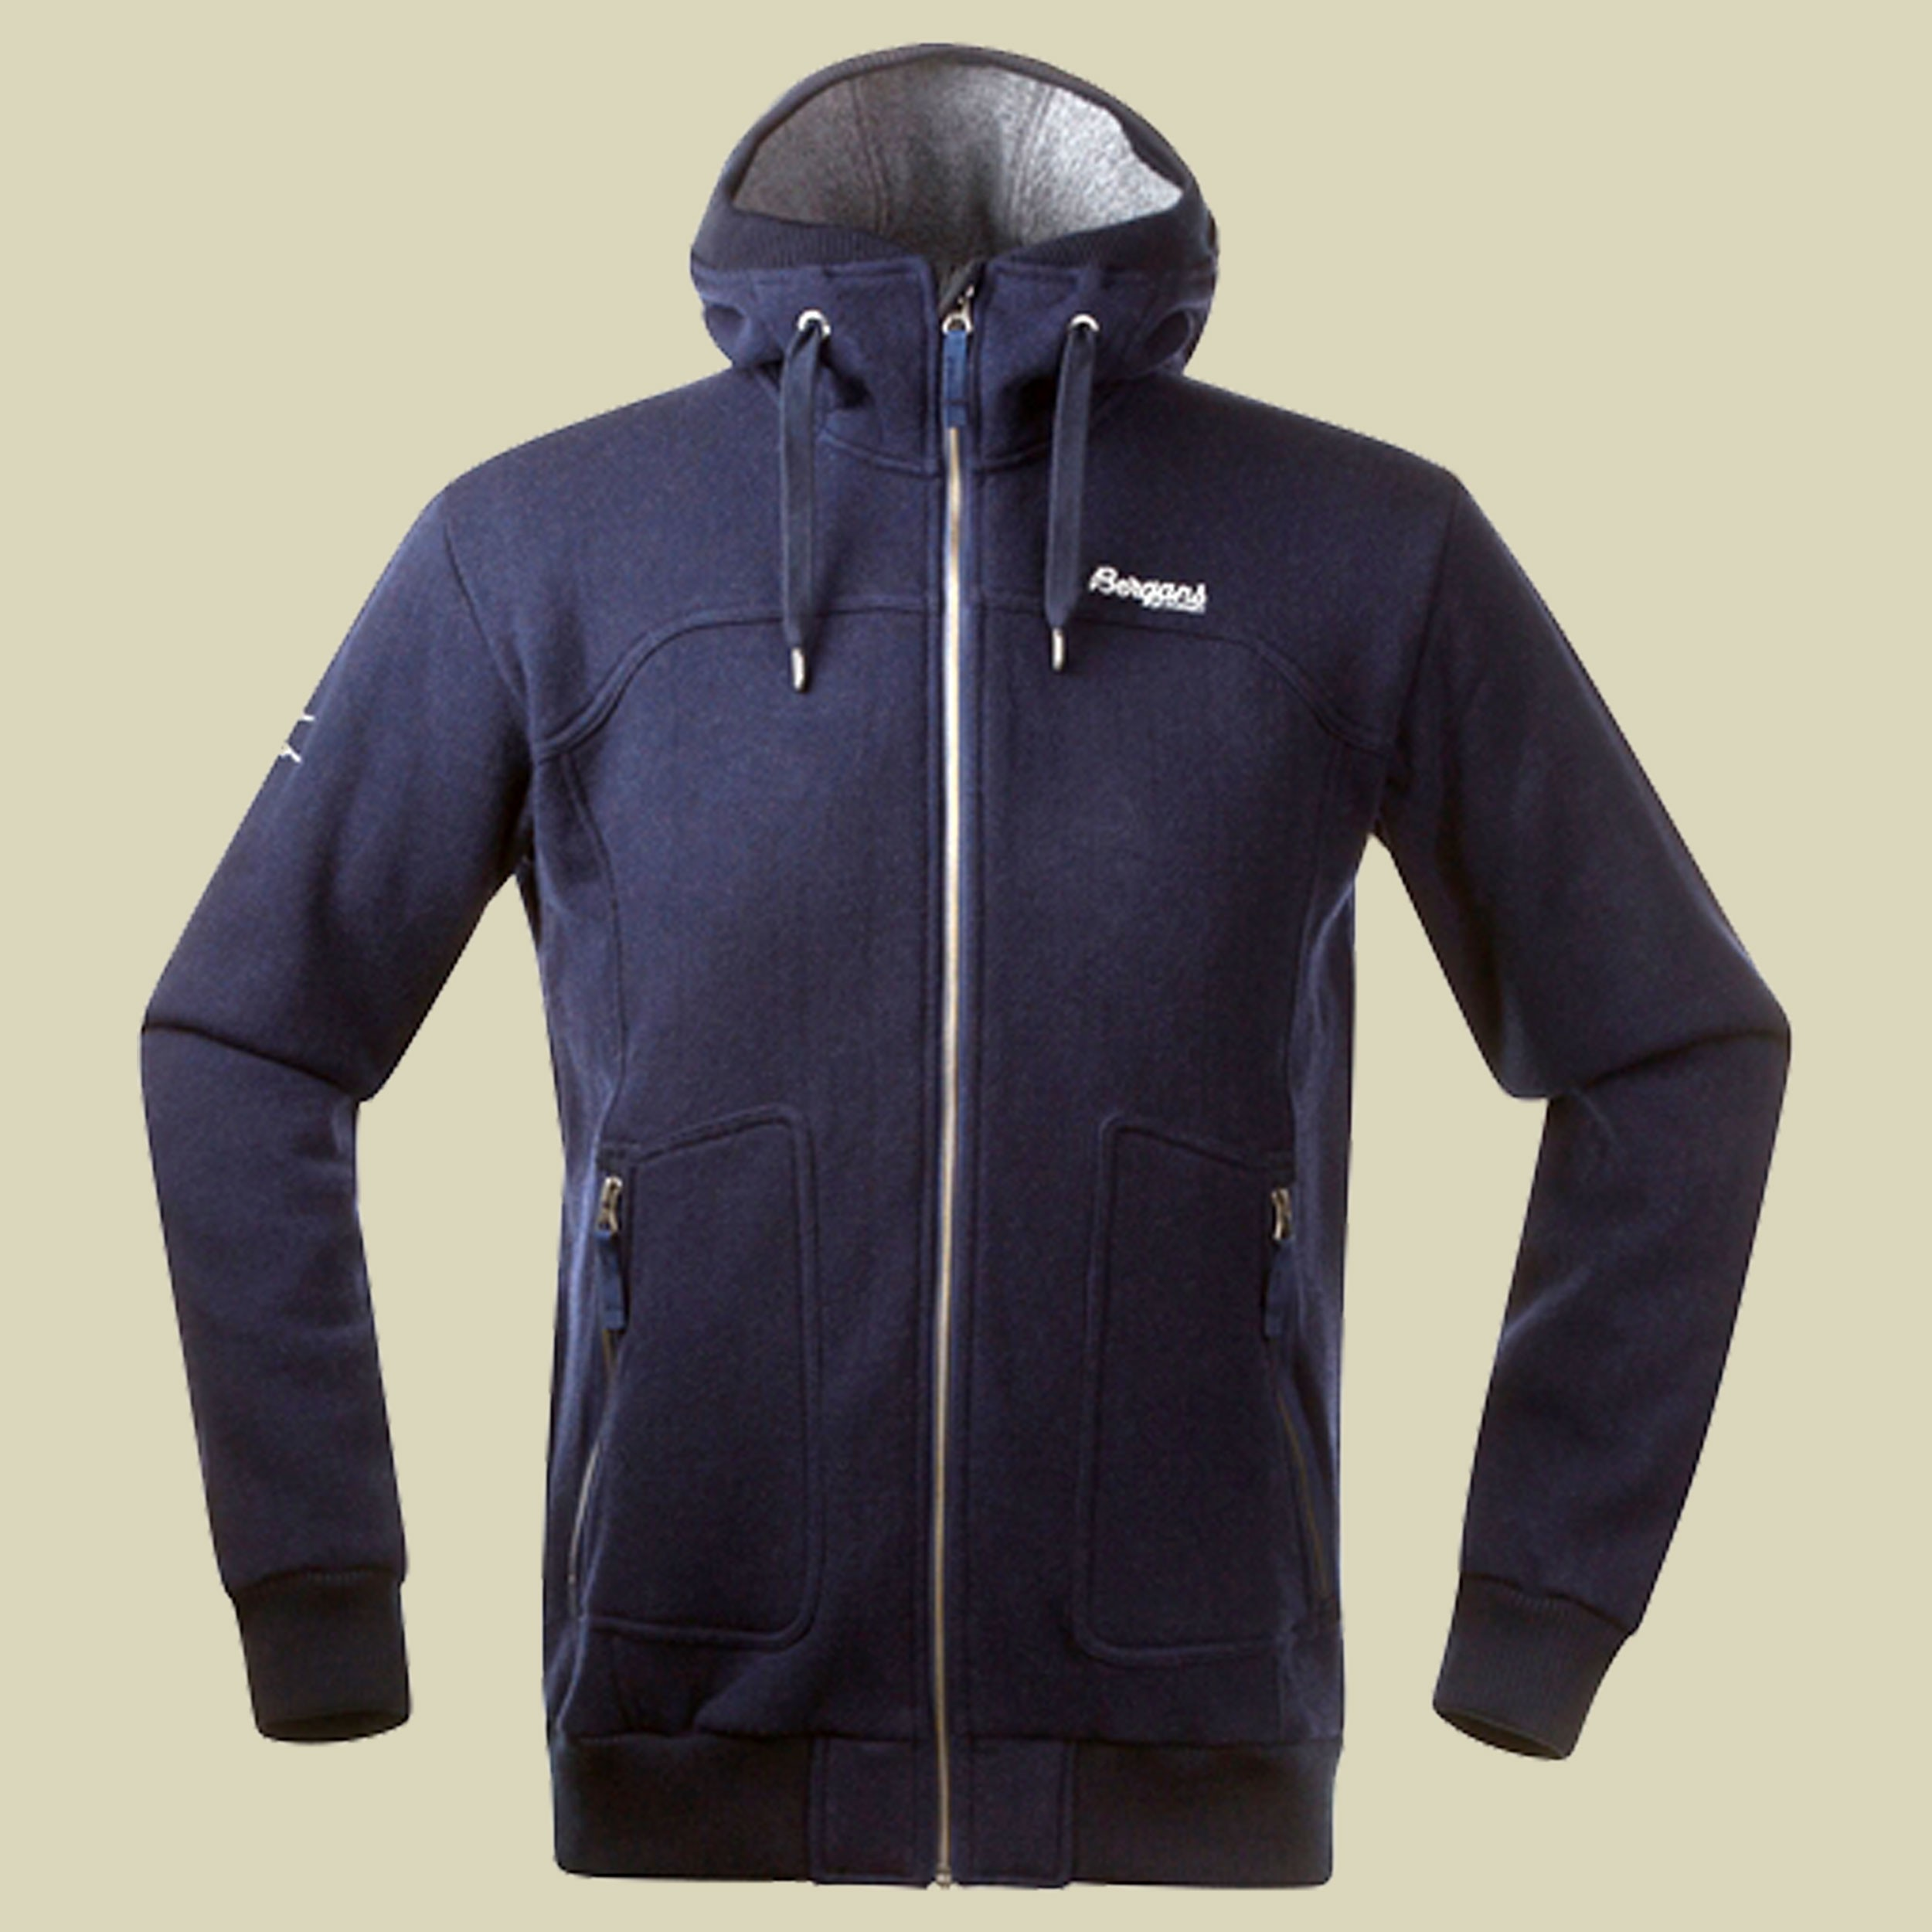 Myrull Jacket Men